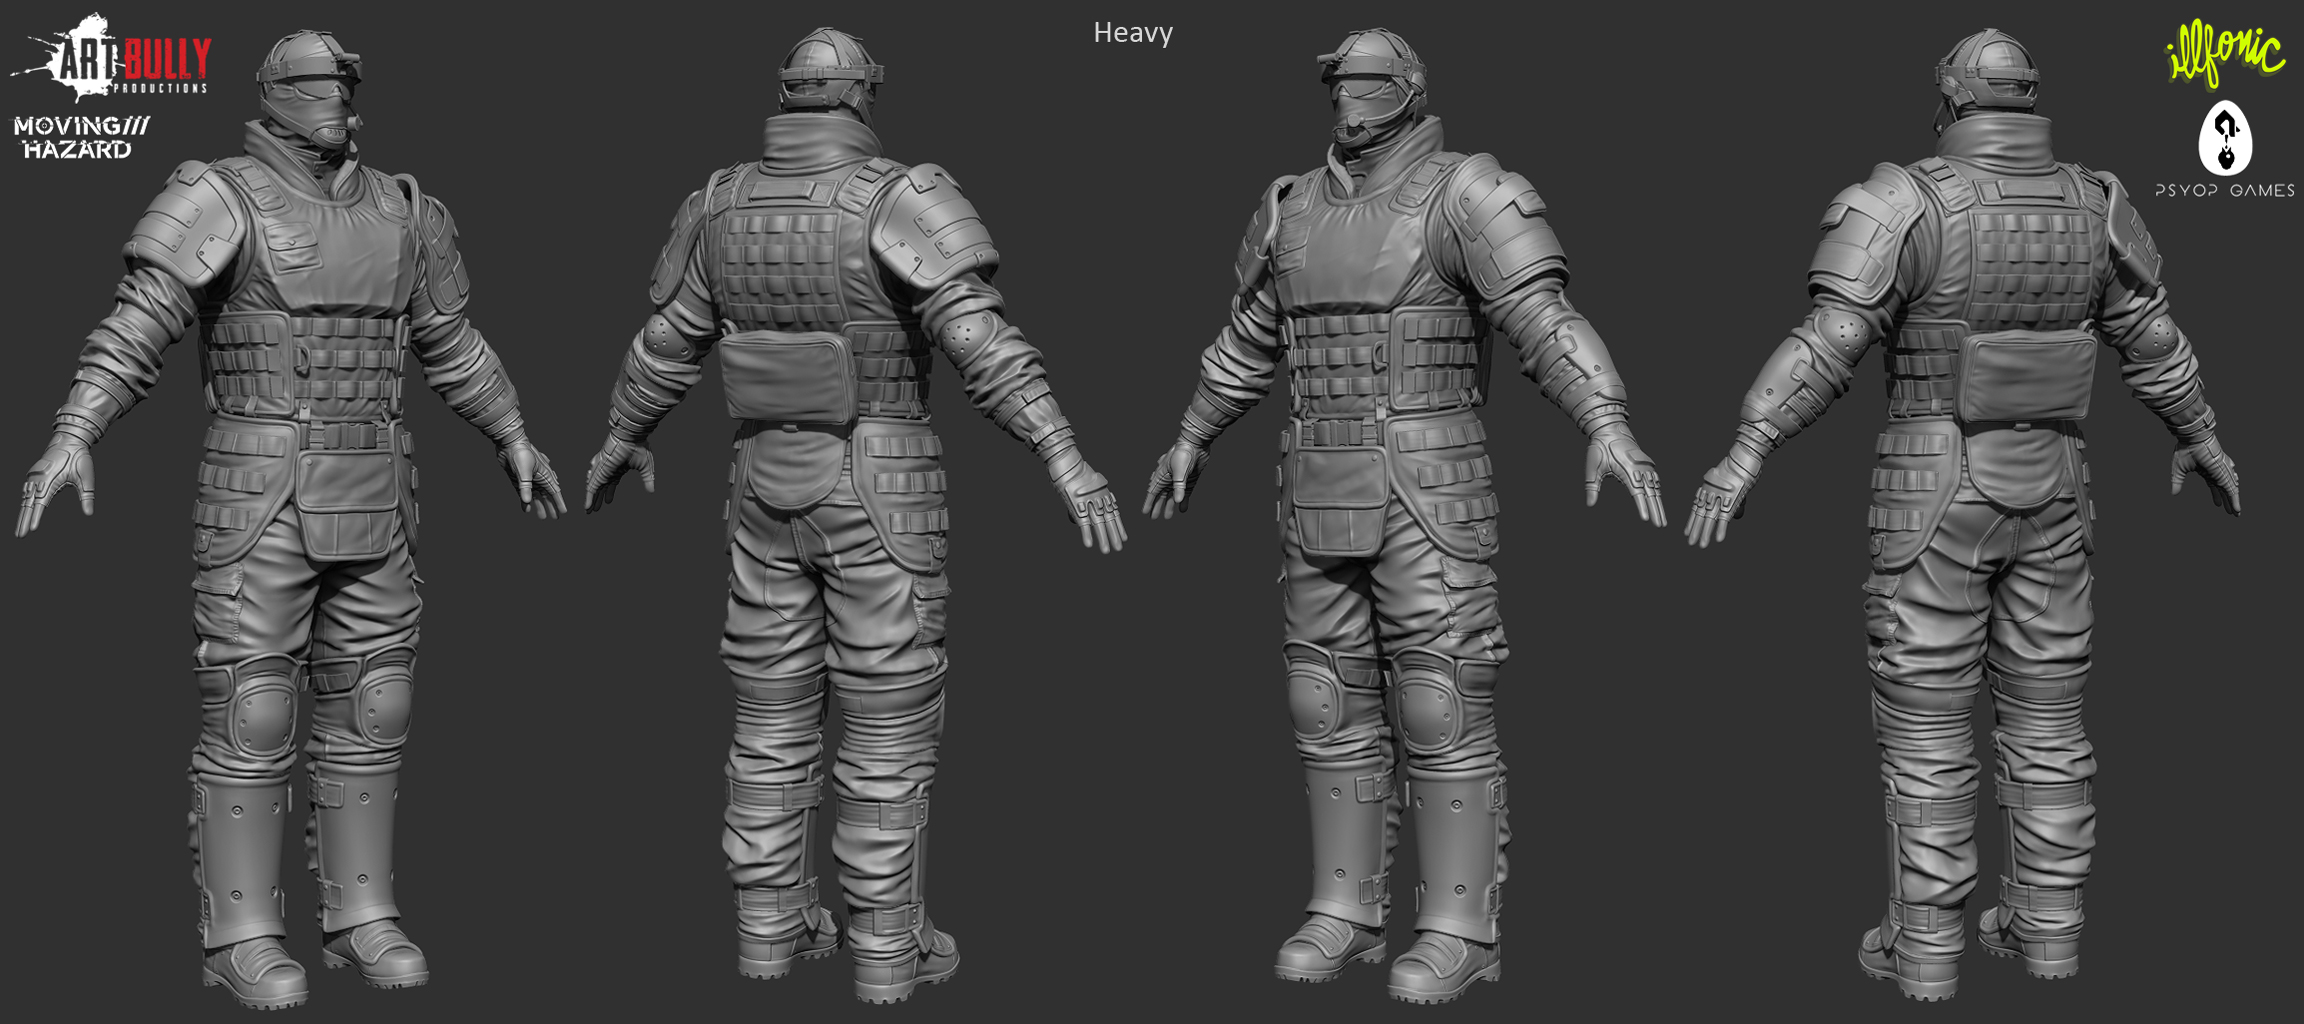 Heavy_Sculpt_Render_01.jpg